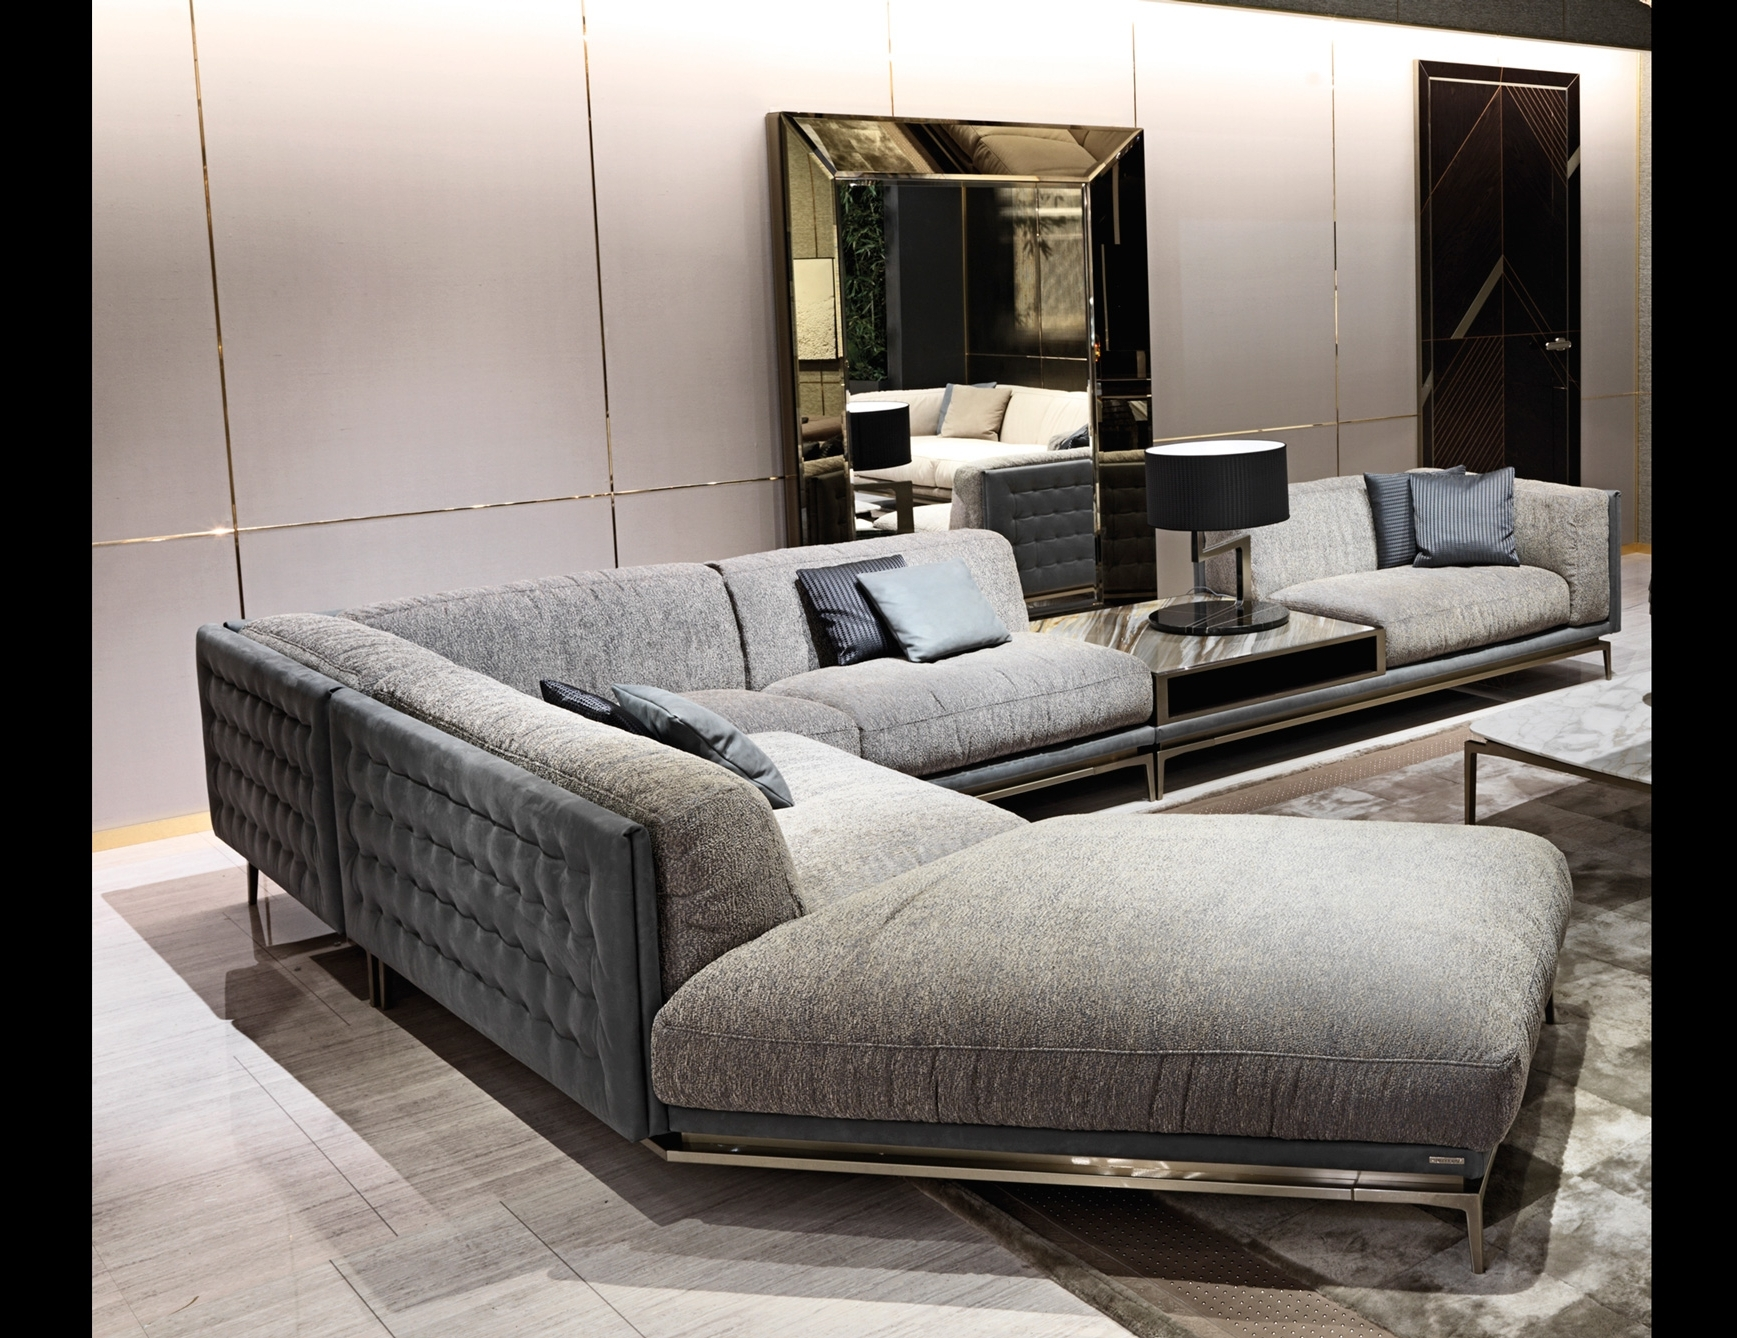 Widely Used Italian Designer Luxury High End Sofas & Sofa Chairs: Nella Vetrina For High End Sofas (View 13 of 15)